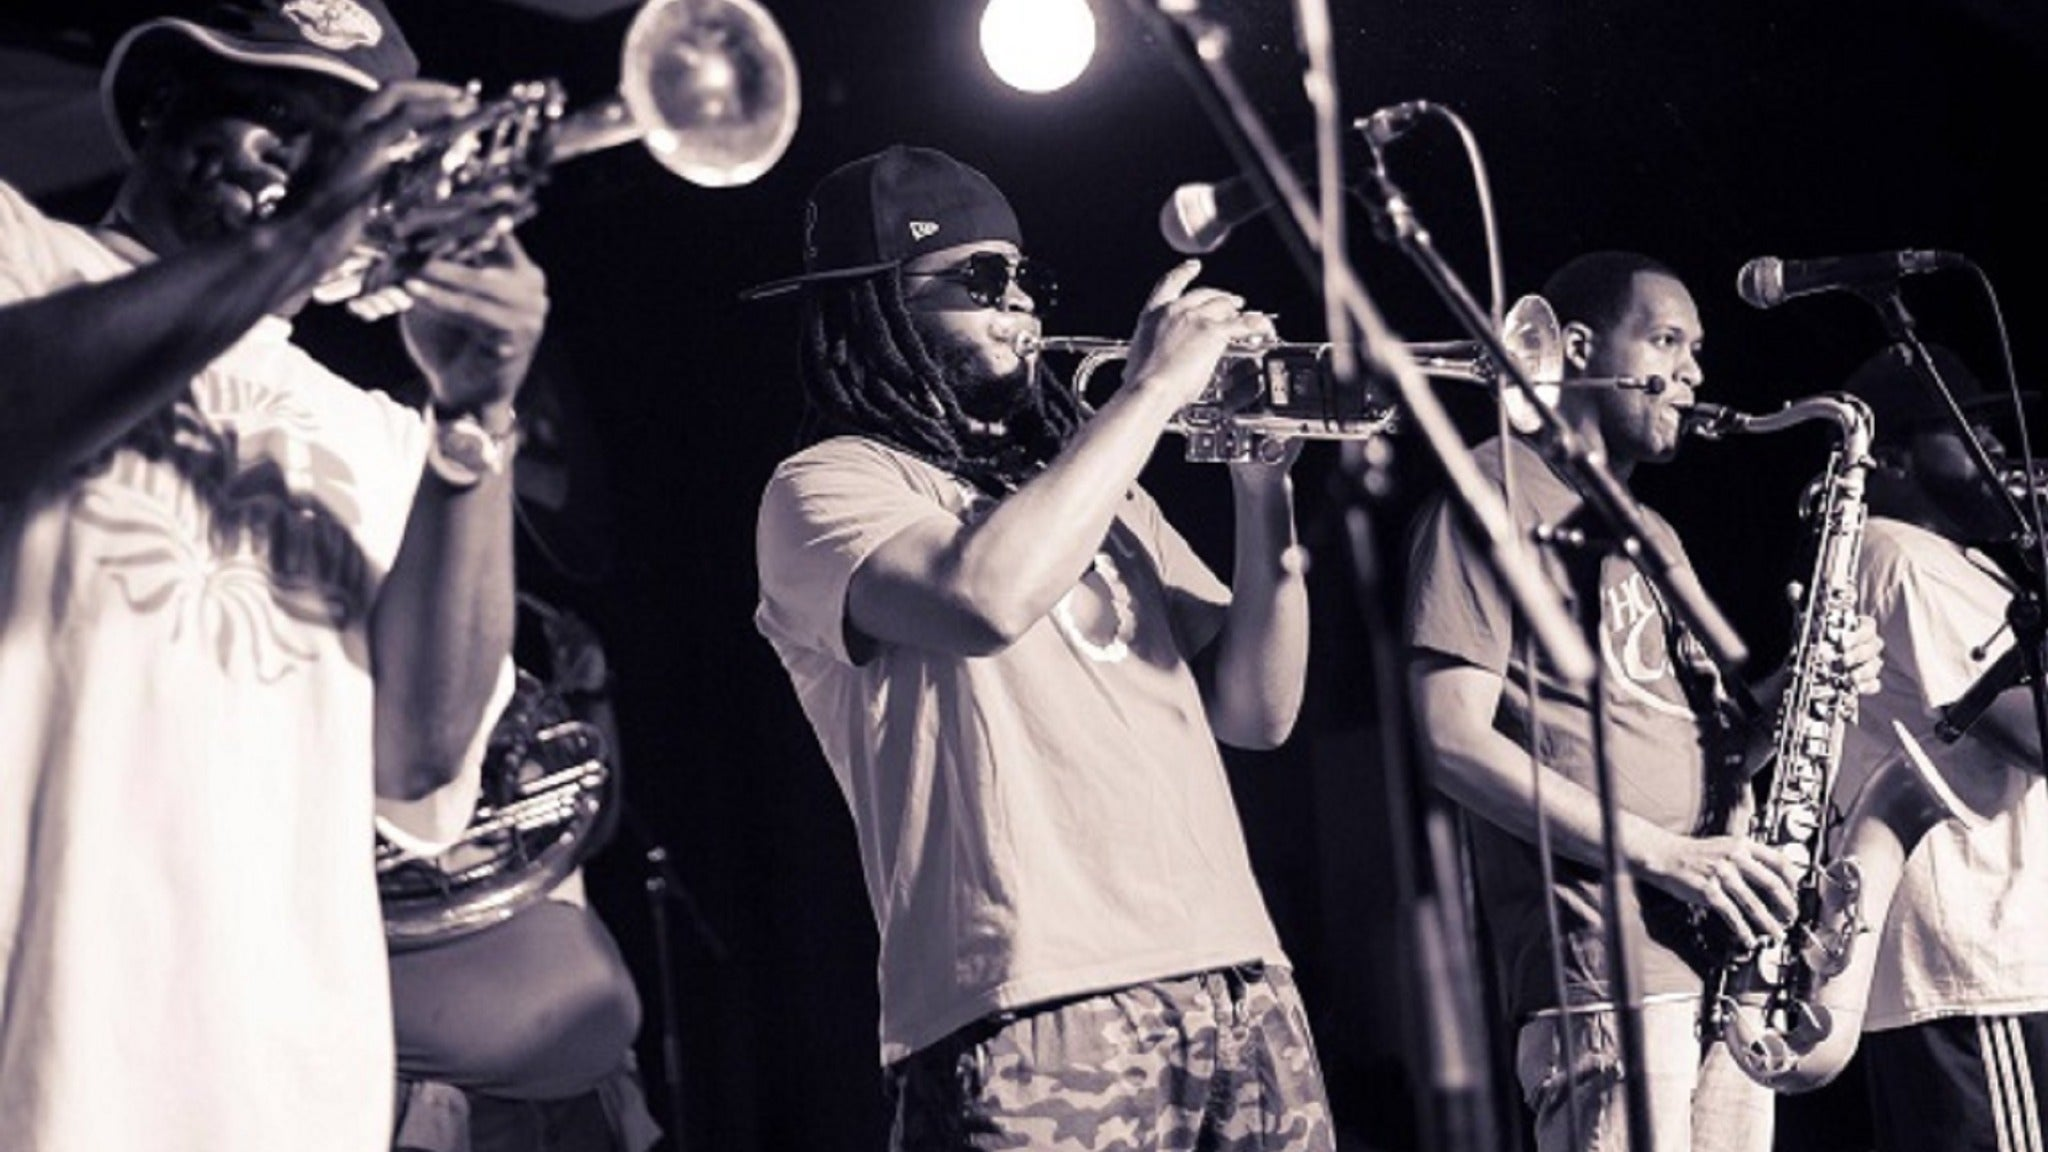 Hot 8 Brass Band at Howlin Wolf - New Orleans